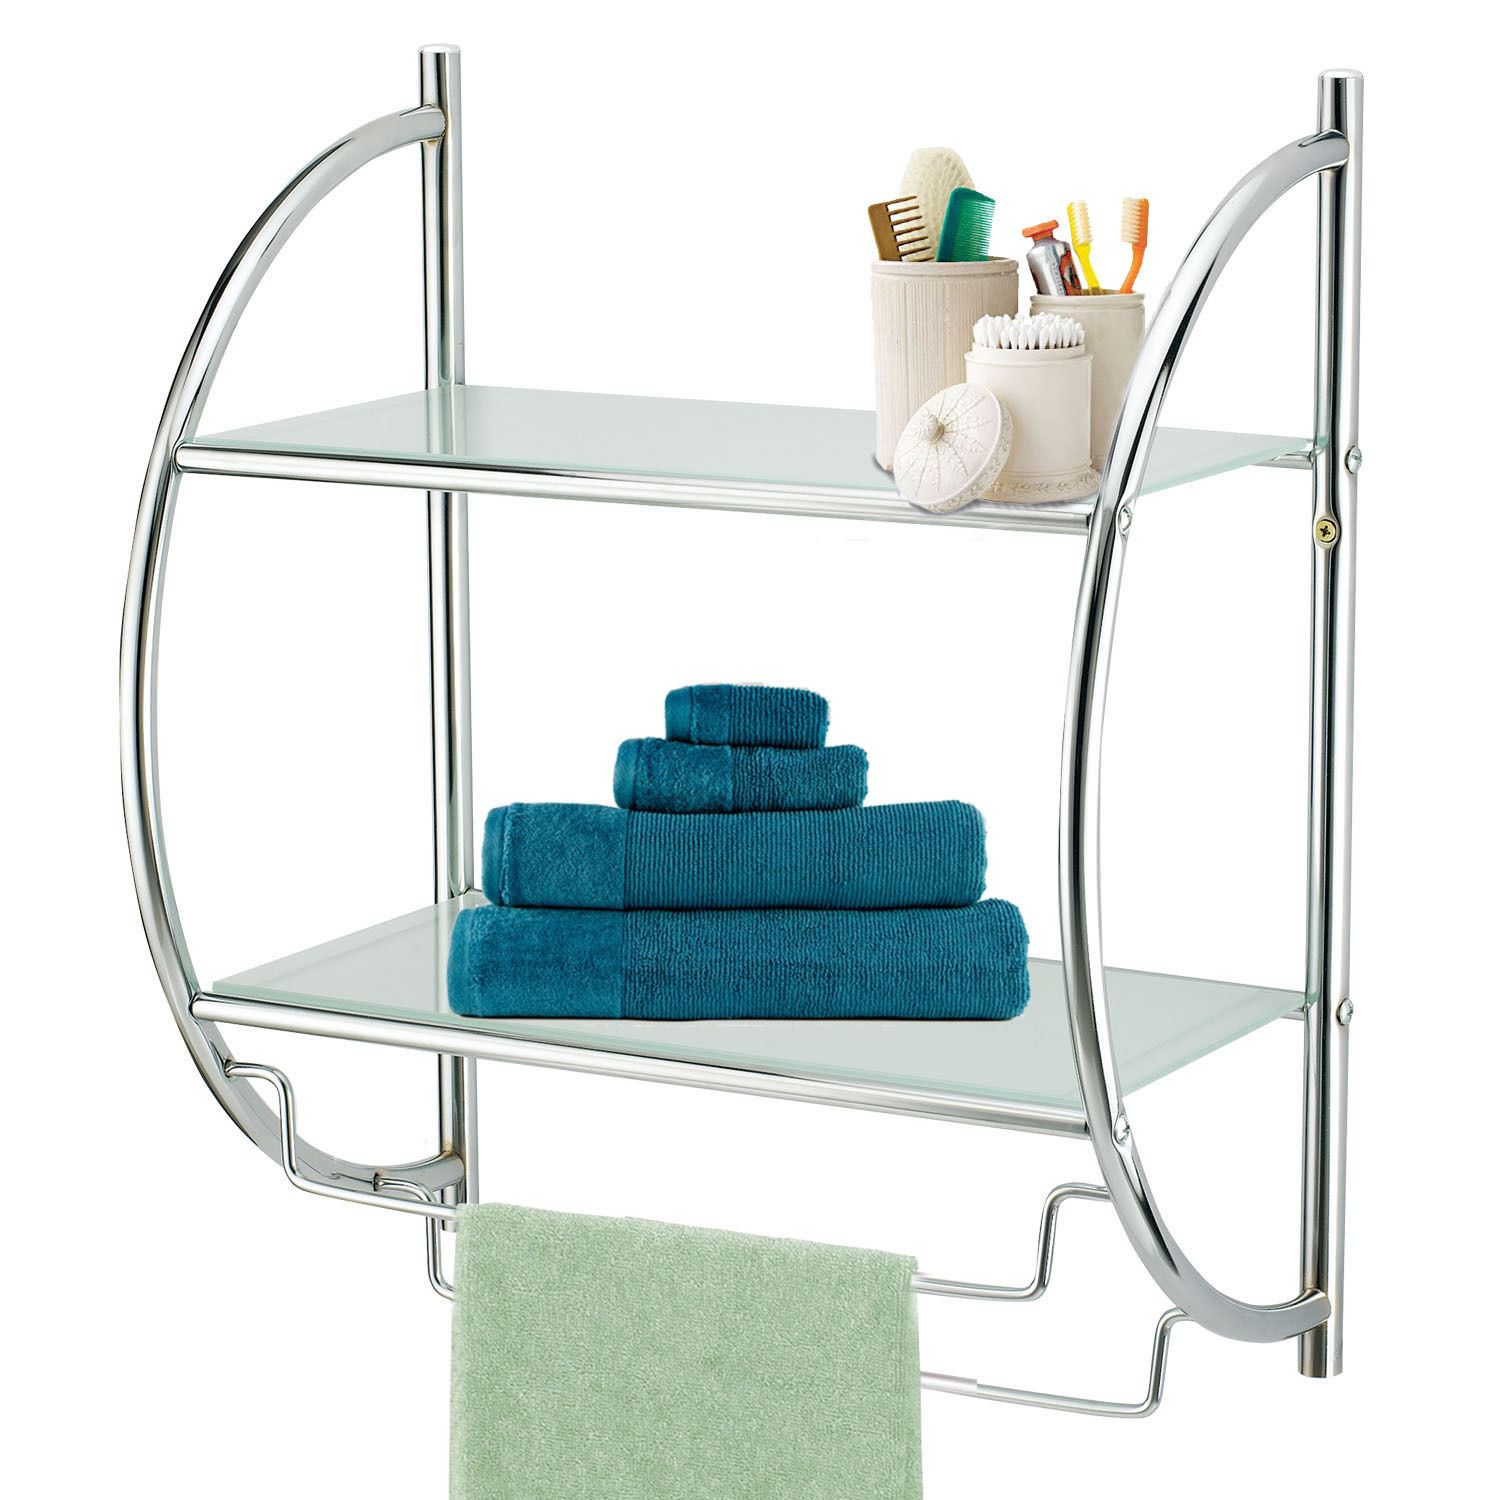 Bathroom accessories Koin doo